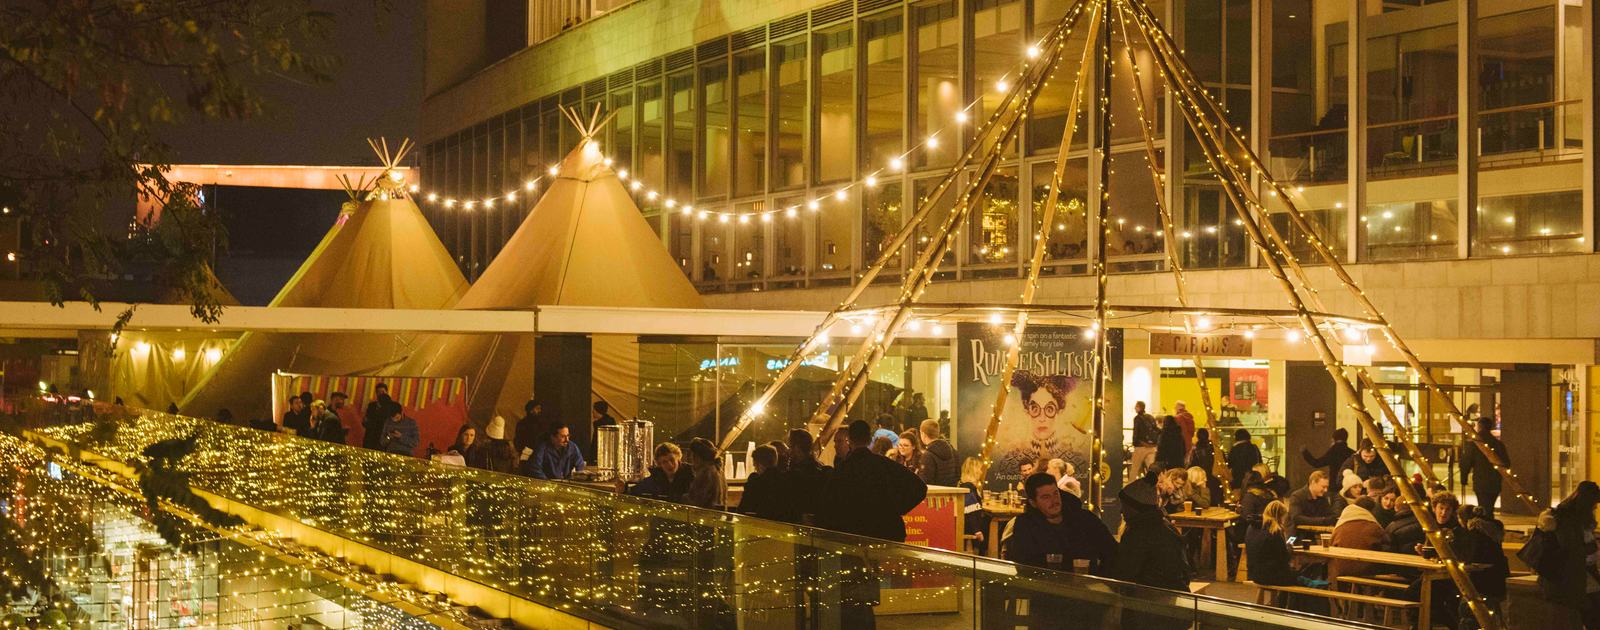 Exterior view of The Circus Bar as part of Winter at Southbank Centre